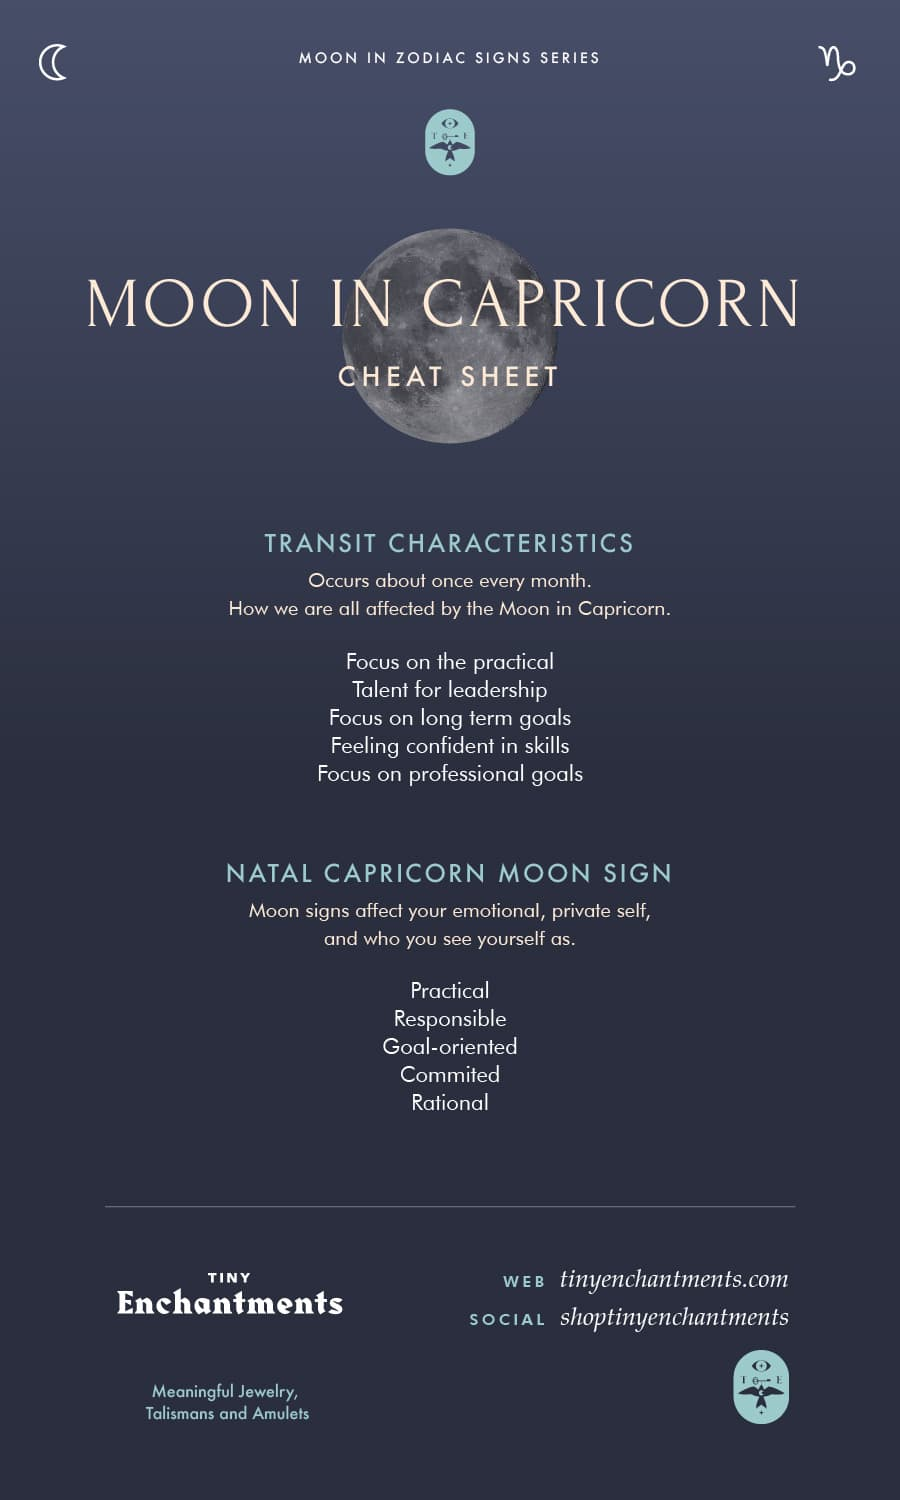 Capricorn Moon Sign and Moon in Capricorn Transit Meanings Infographic Full